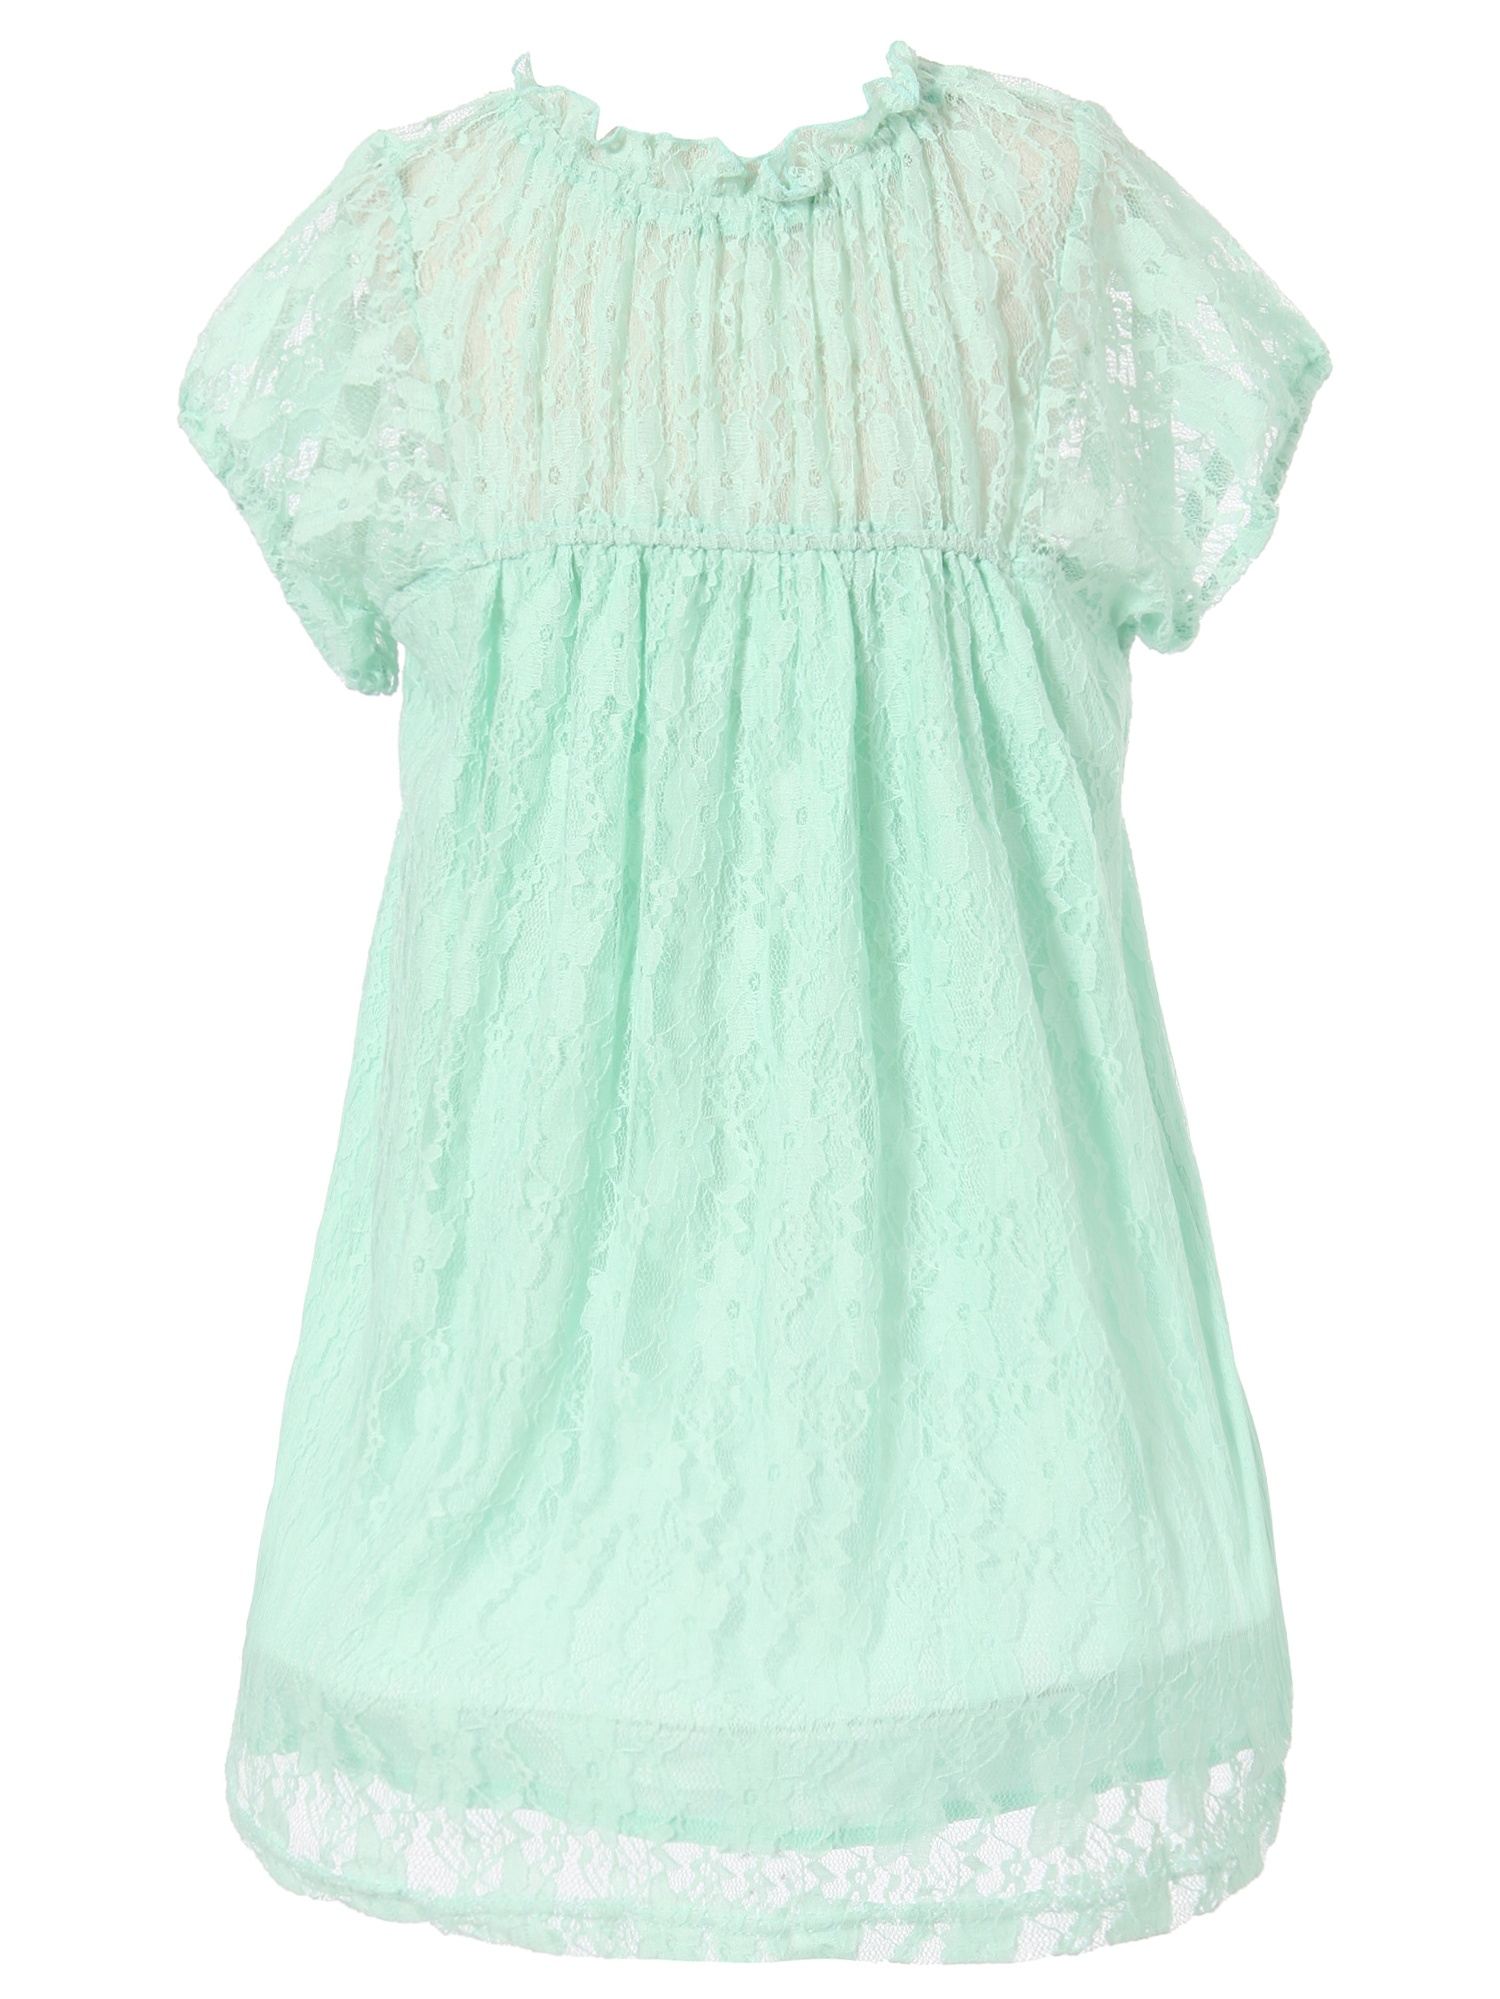 Richie House Girls' Sweet Top with Lace RH1551